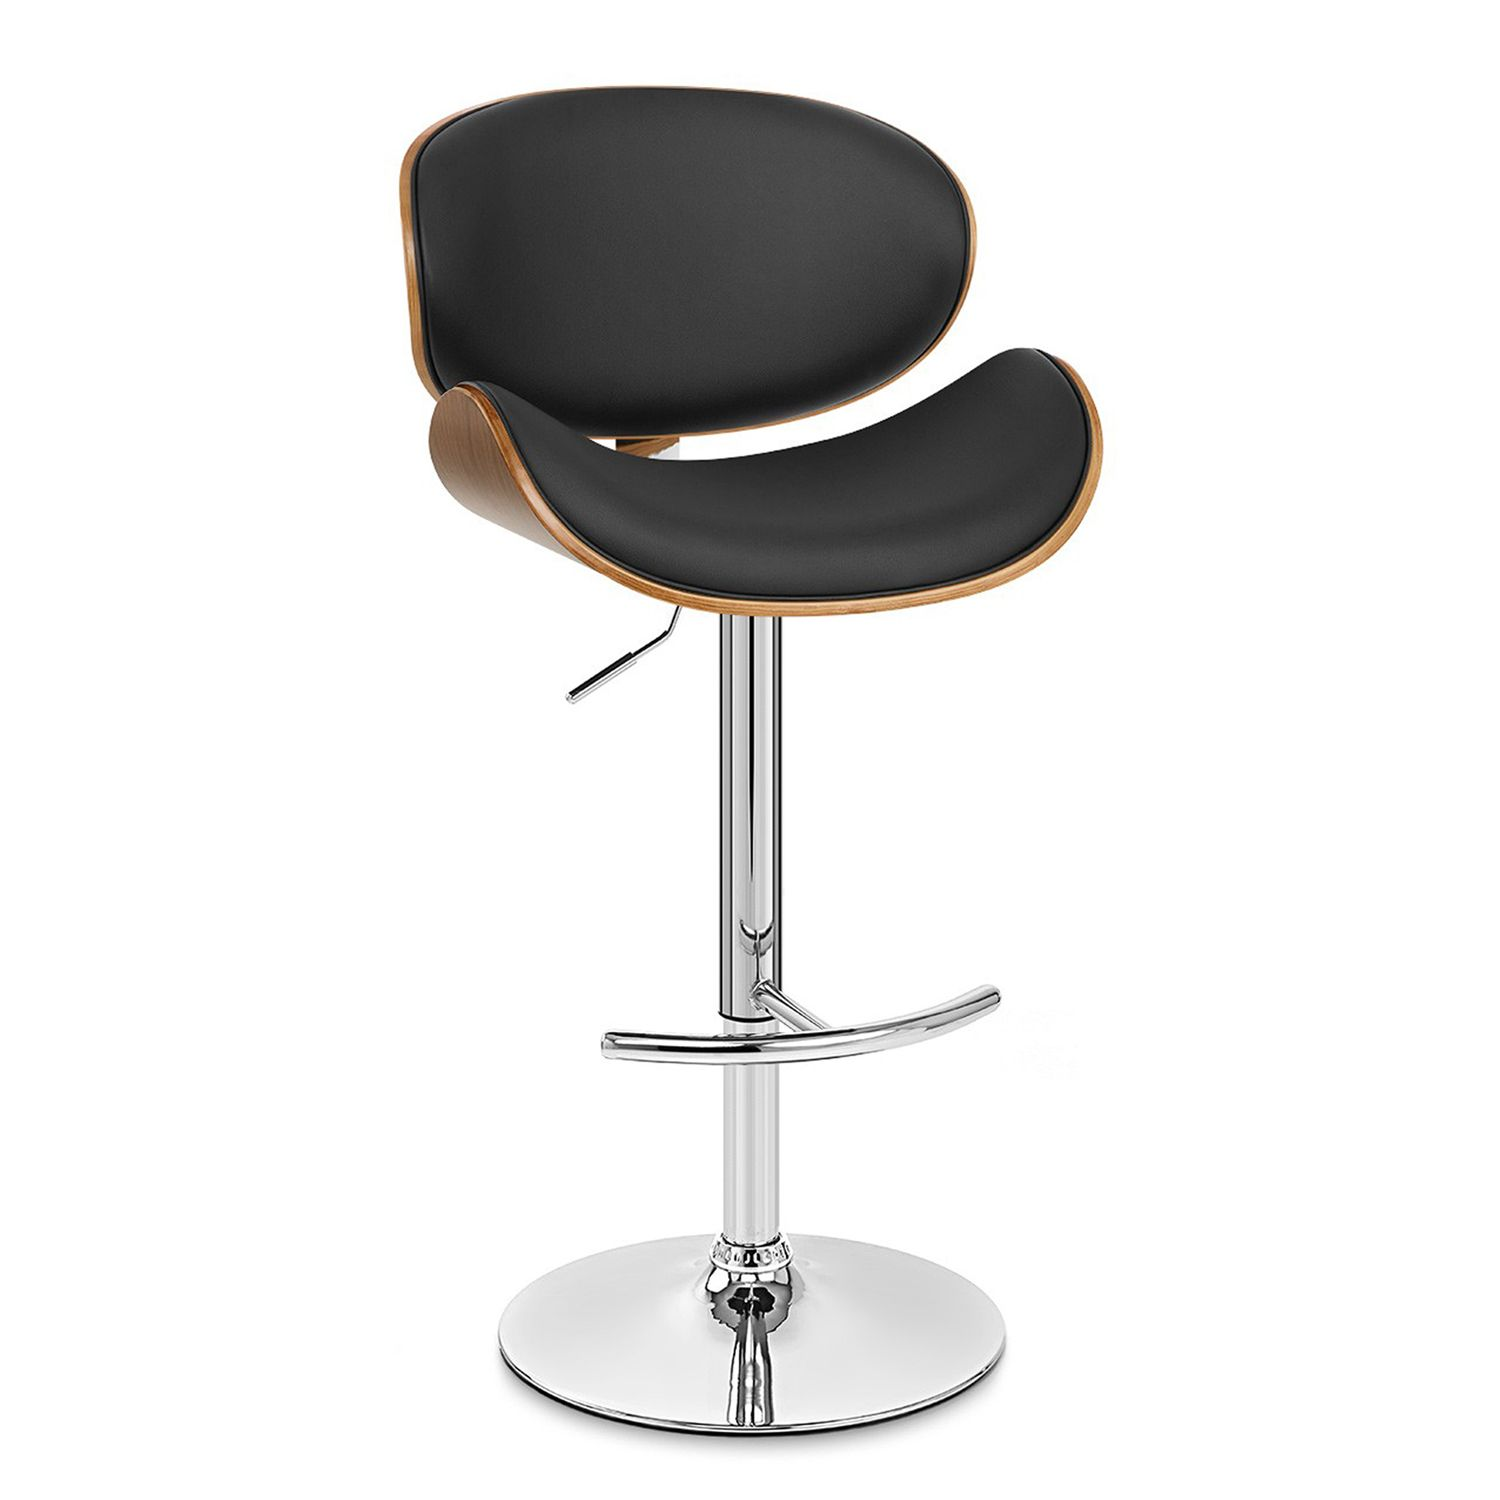 Armen Living Paris Adjustable Swivel Bar Stool. Regular